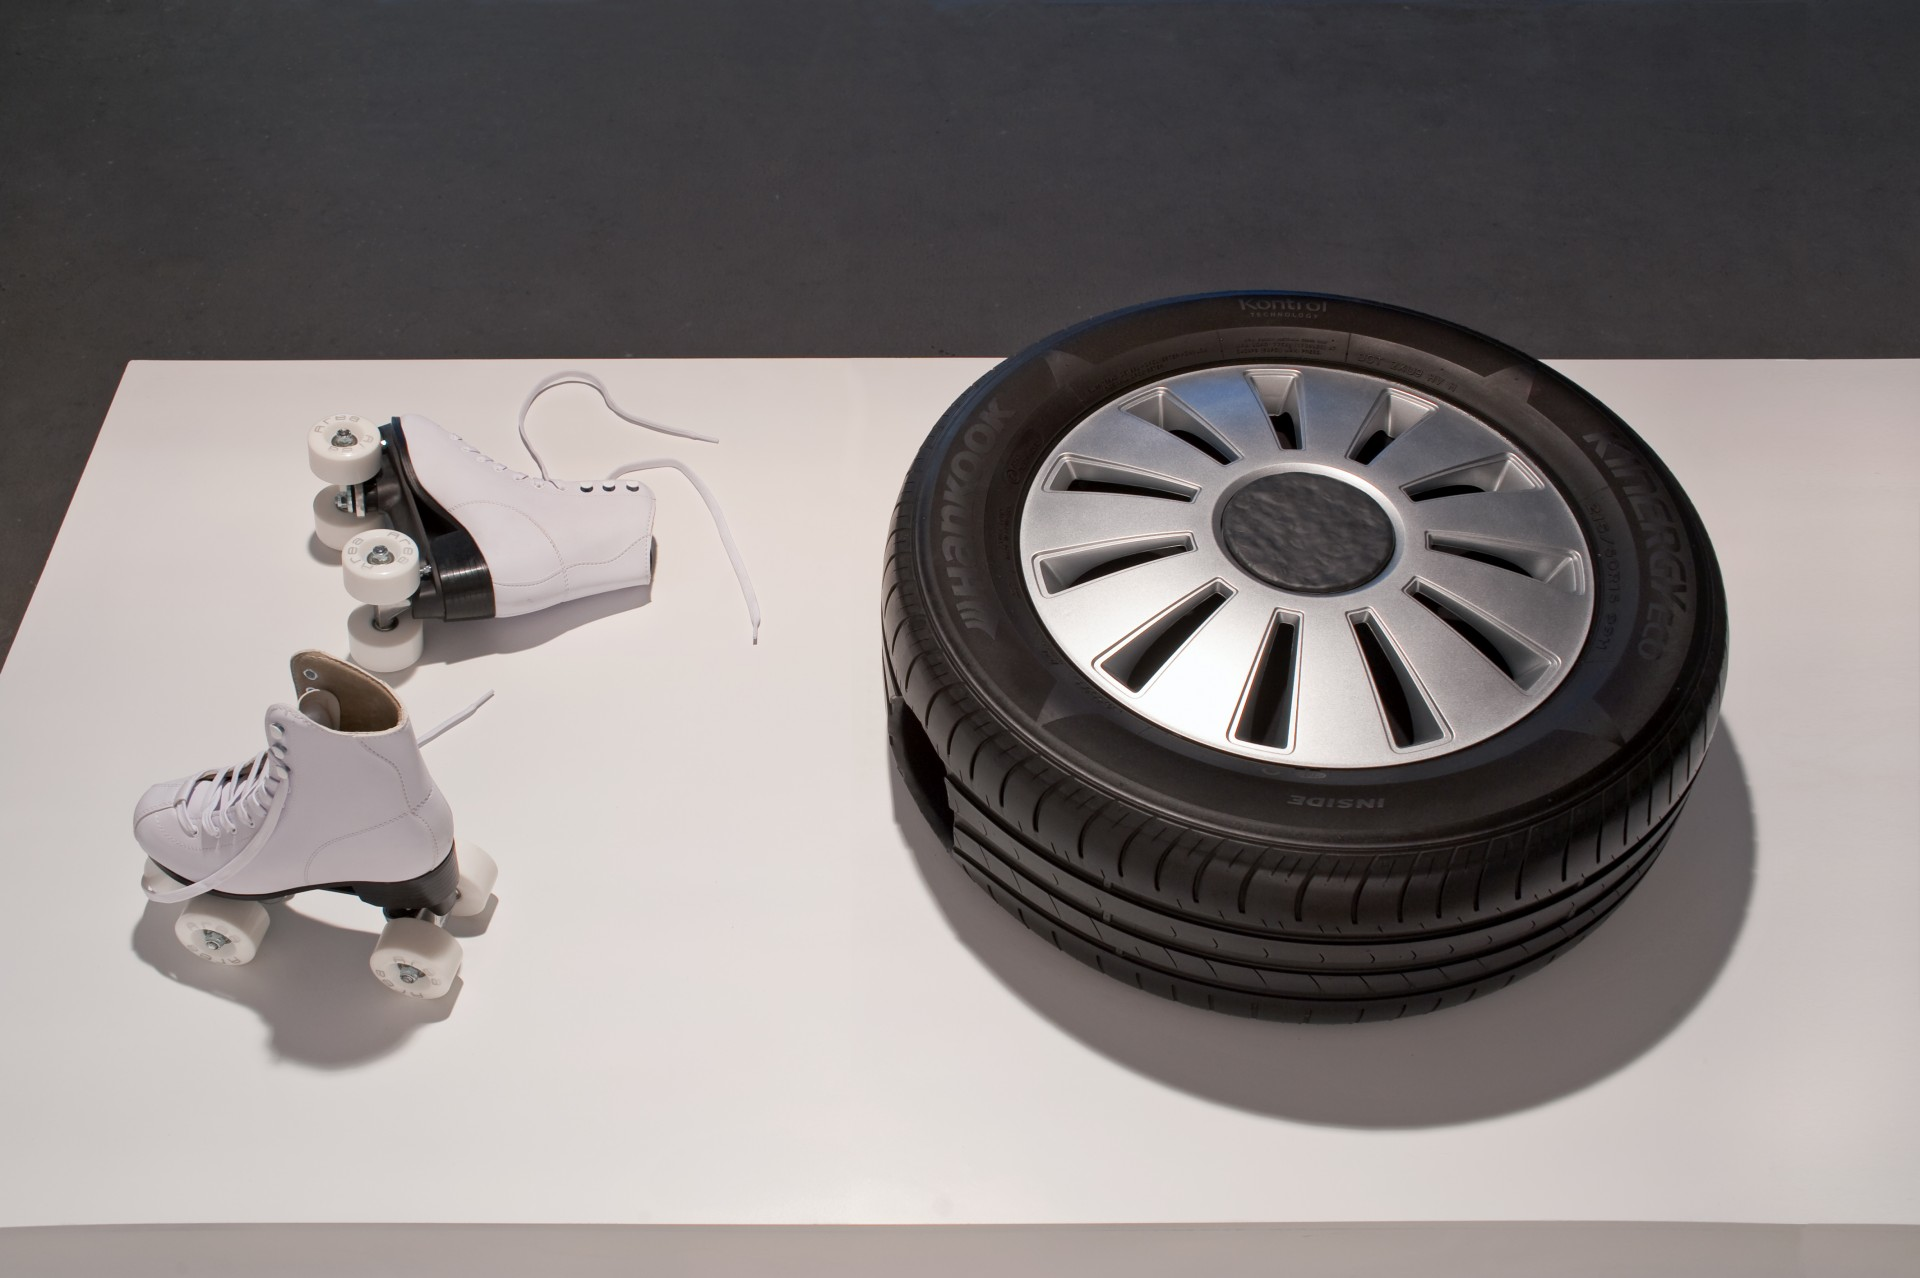 Jamie Isenstein, <i>Wheel on Wheels!</i>, 2017, tire, hubcap, wood, epoxy, roller skates, rotating cast of legs, dimensions variable, performance sculpture. Courtesy of the artist and Gluck50. Ph. Raph Meazza